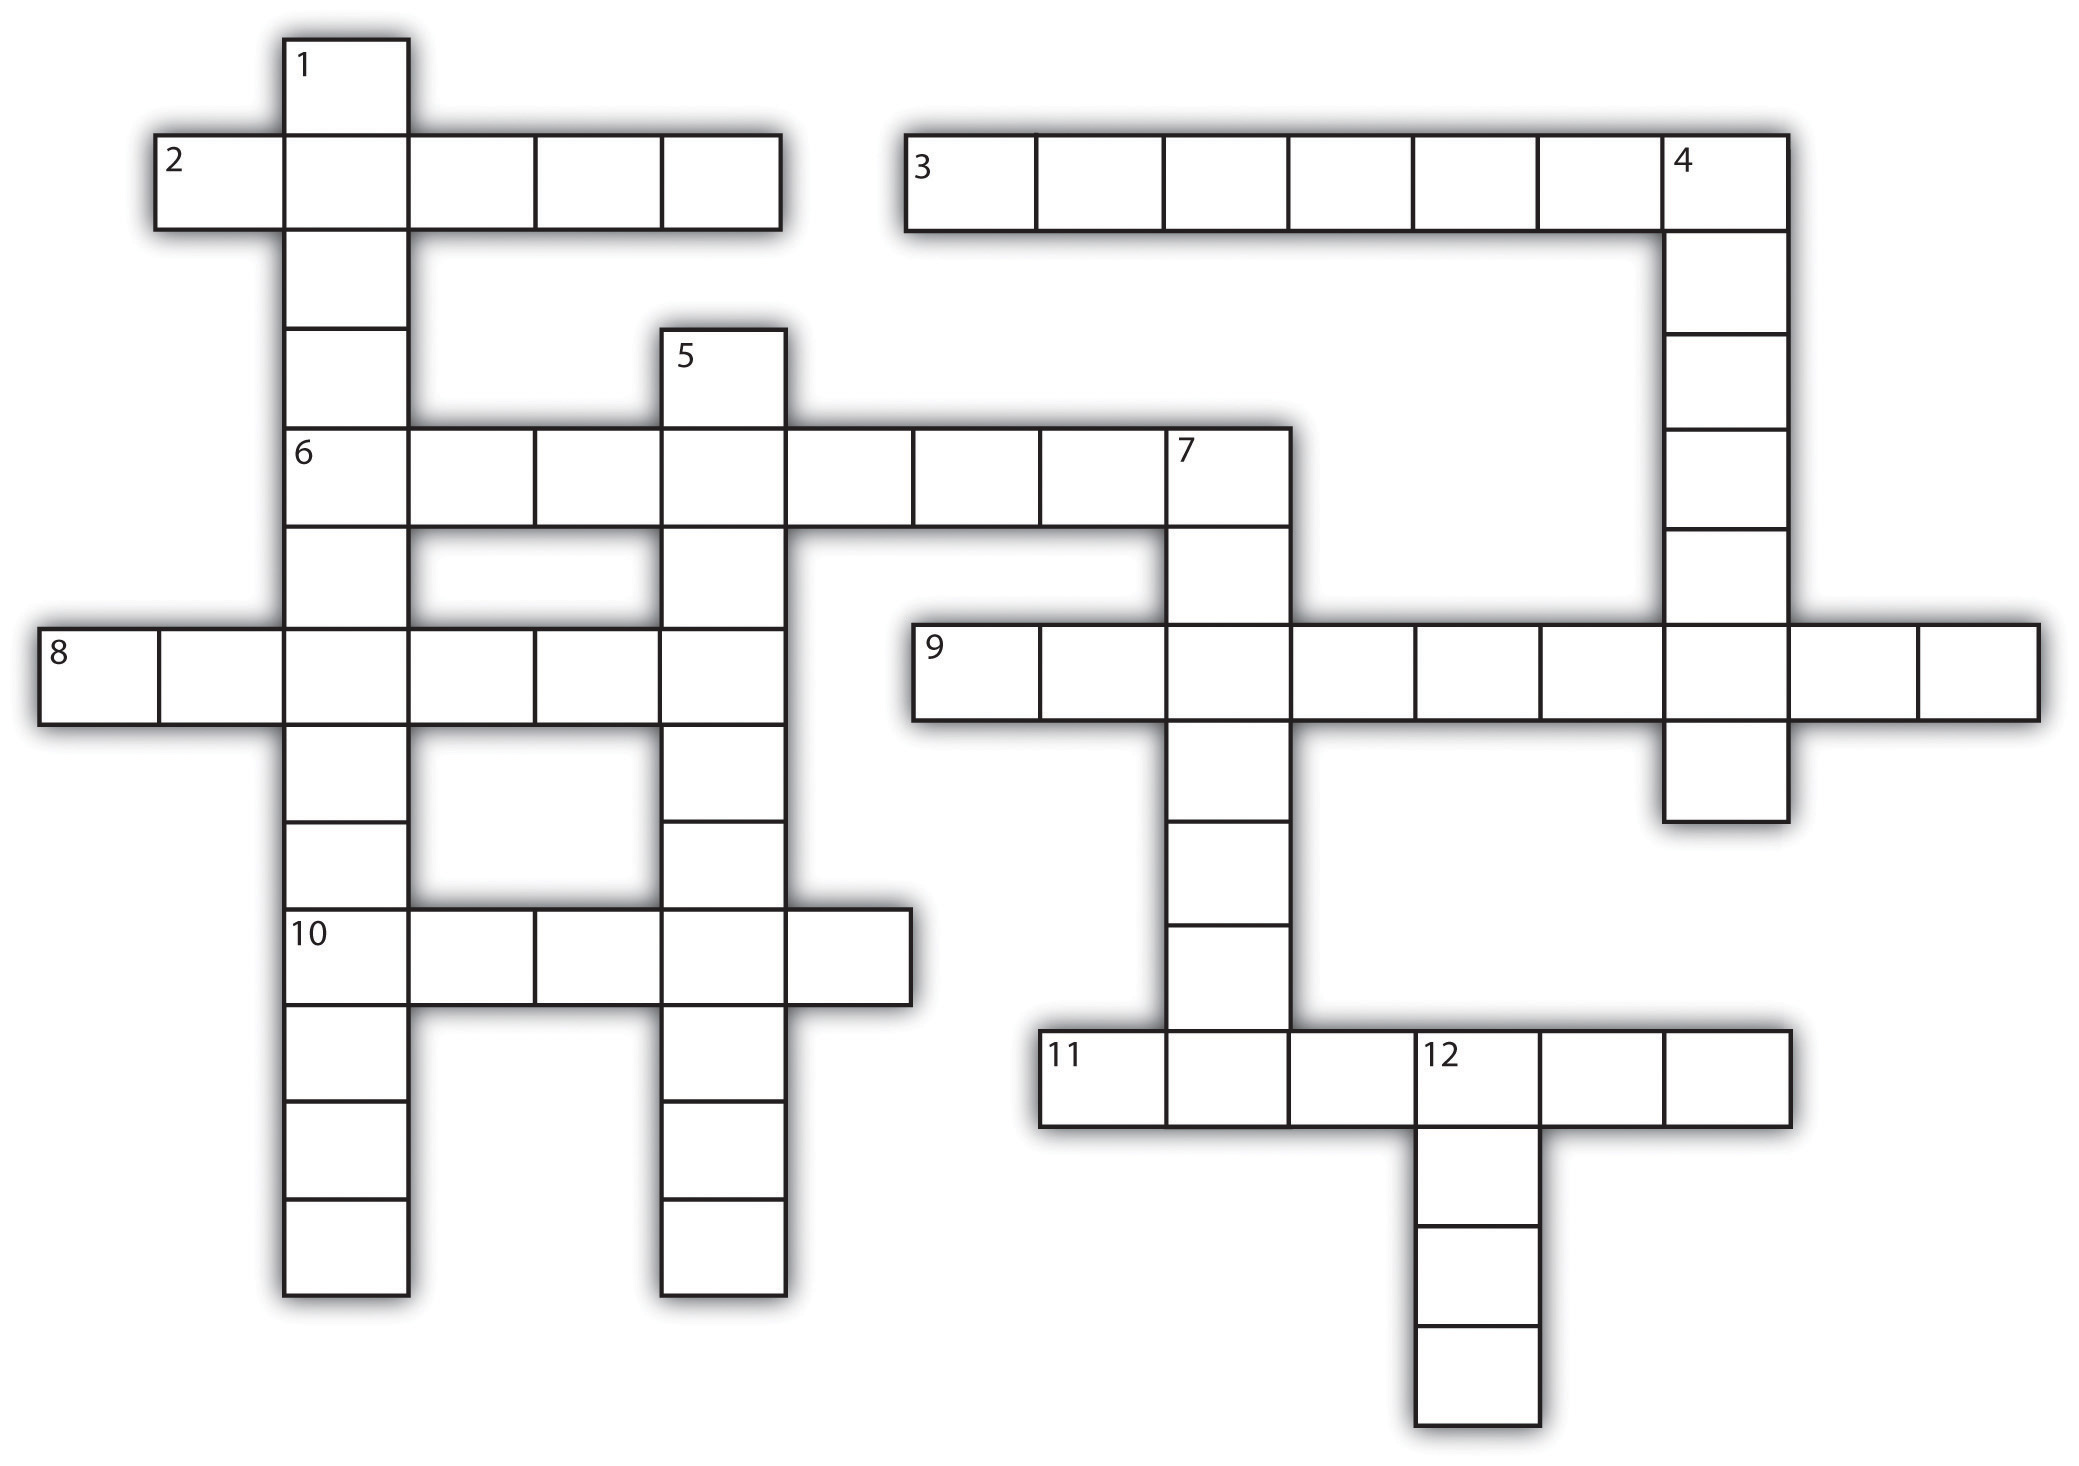 2079 x 1466 jpeg 158kB, Blank 15 Crossword Puzzle Figure 6.6 crossword